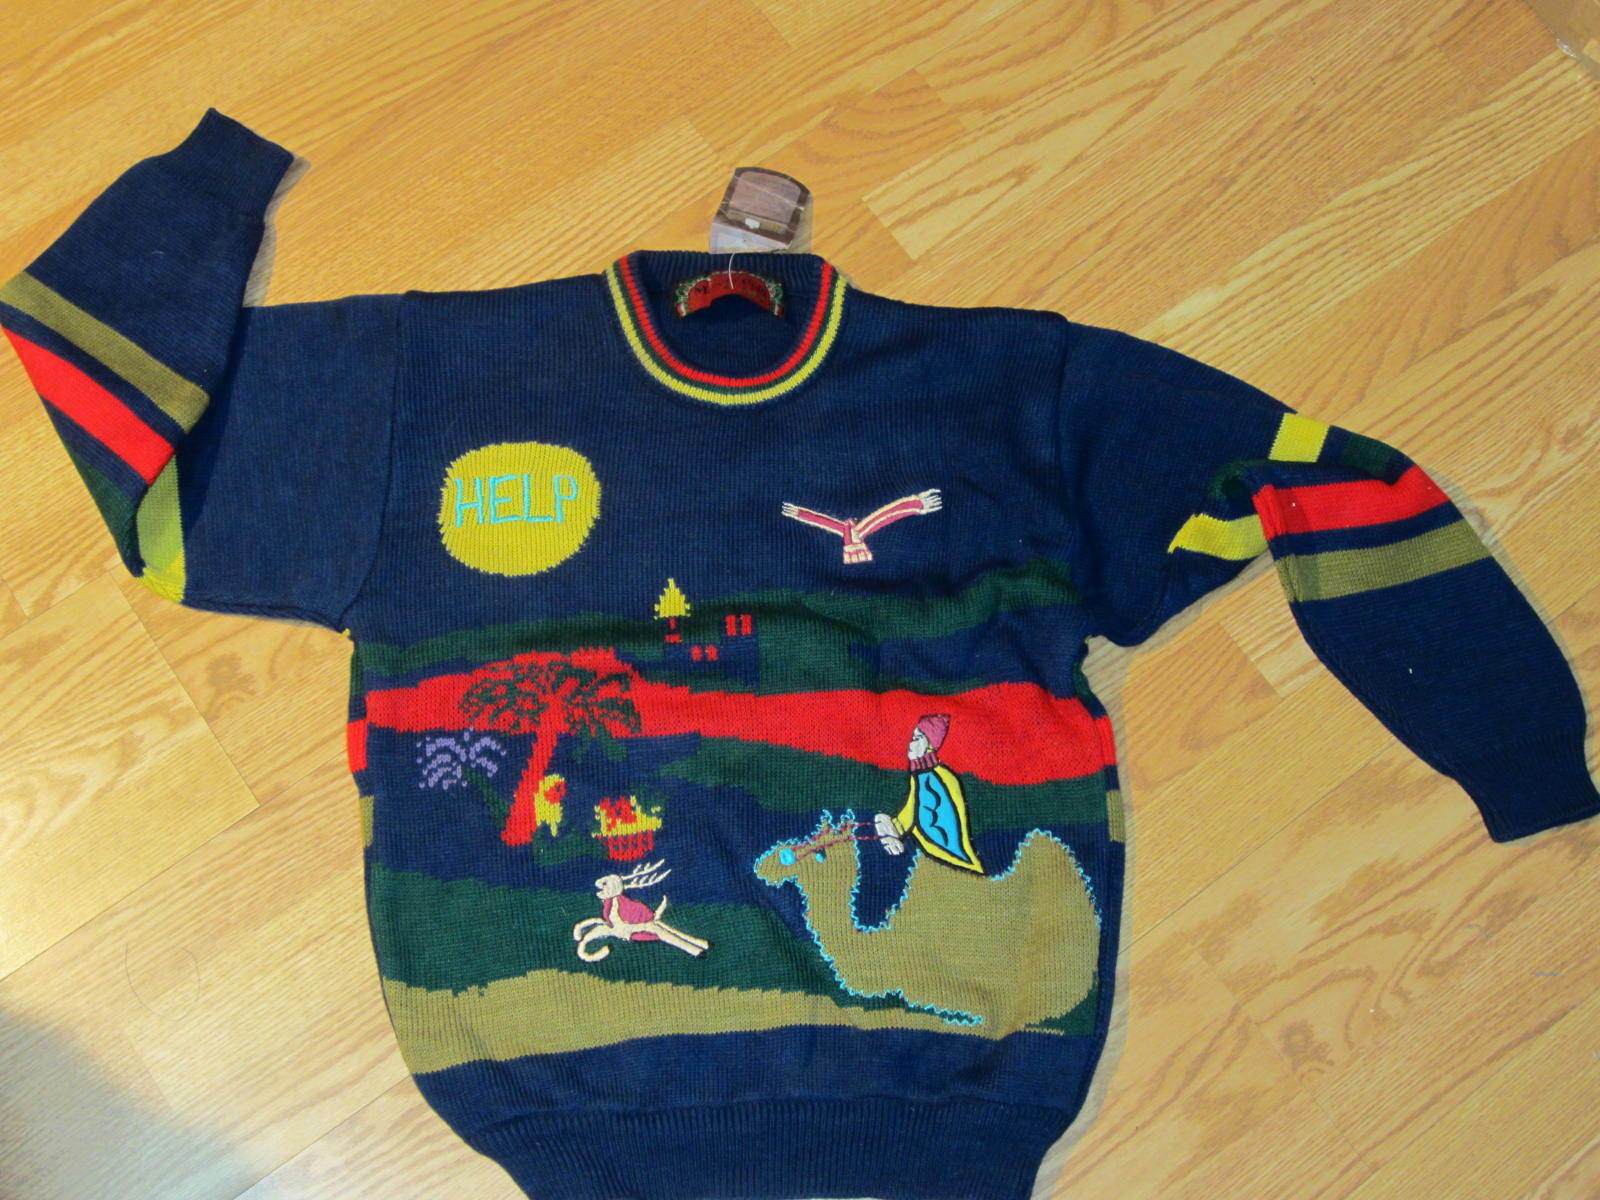 Marc O'Polo Jesus Jet sweater Jesus O'Polo in the Manger Uomo's Medium ugly sweater a03fda